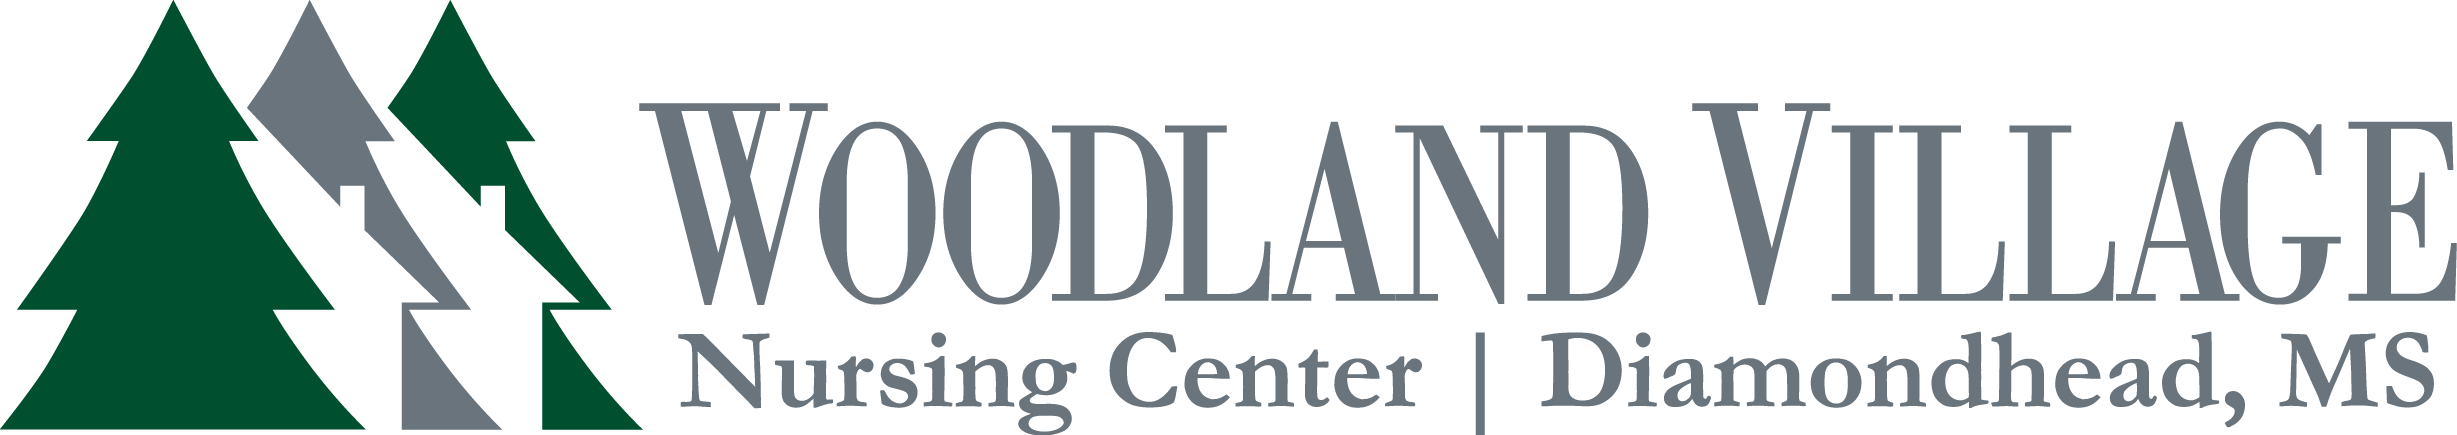 Woodland Village Nursing and Rehabilitation